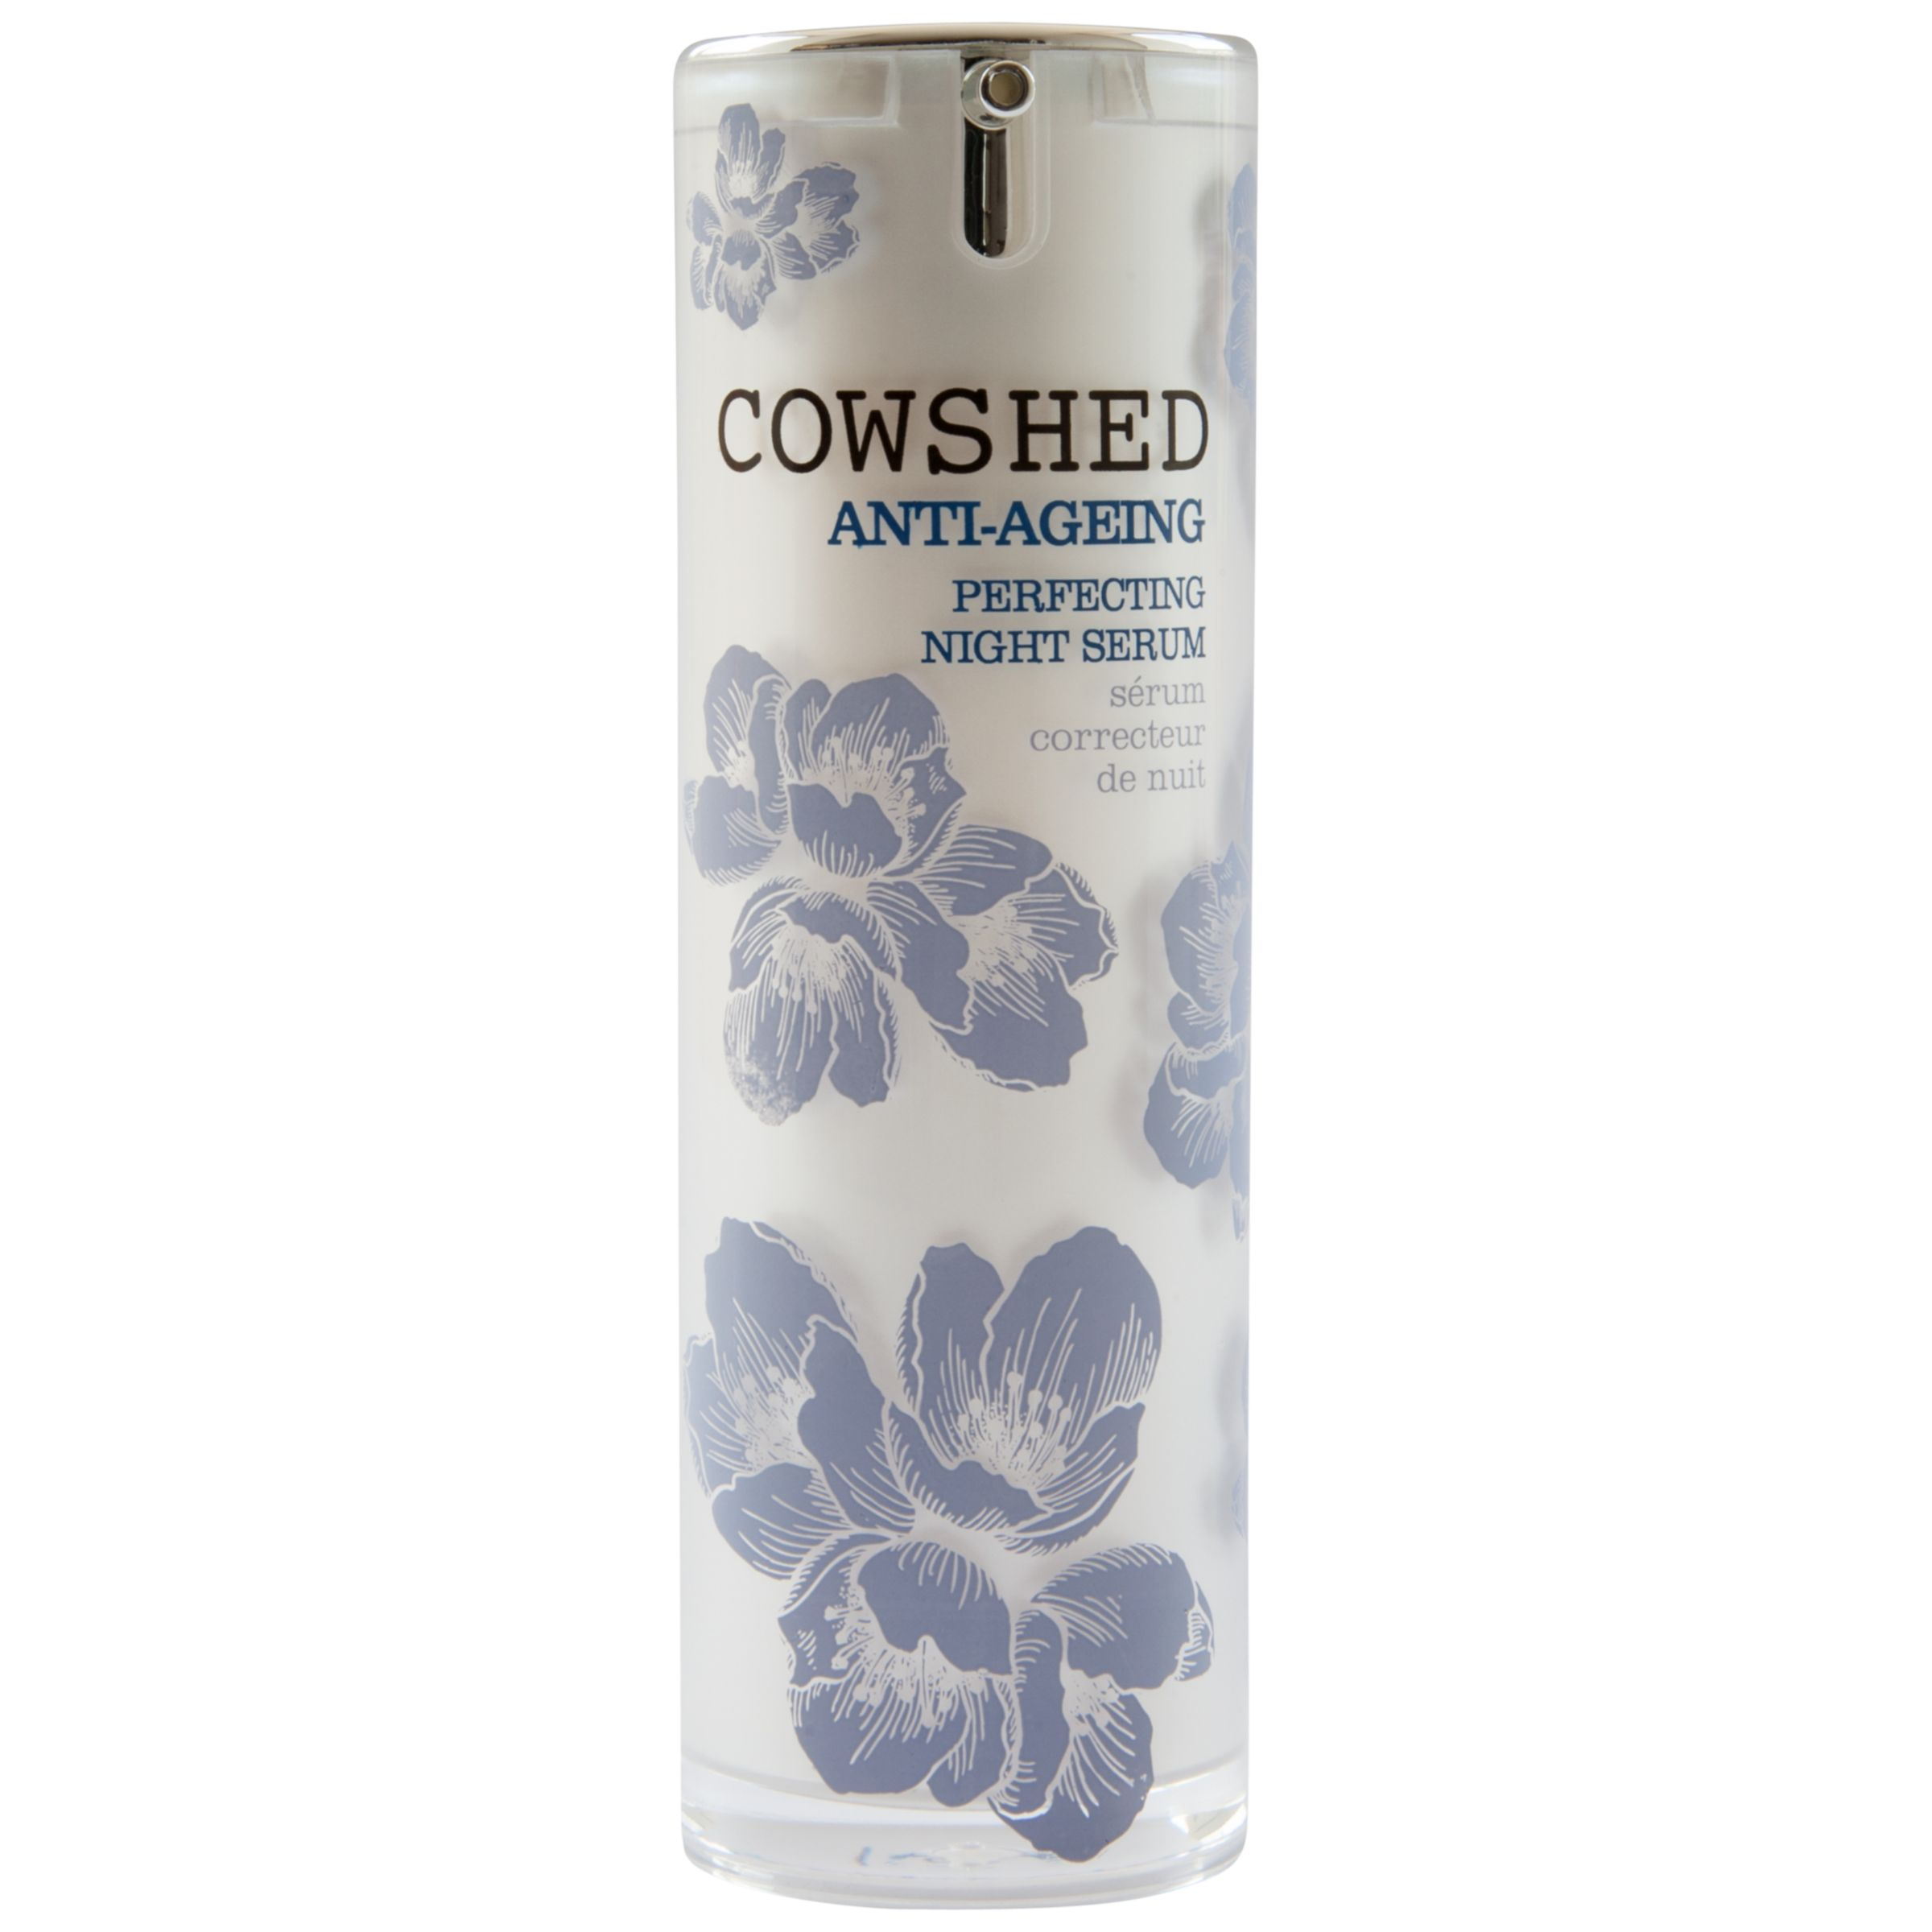 Cowshed Cowshed Anti-age Perfect Night Serum, 30ml